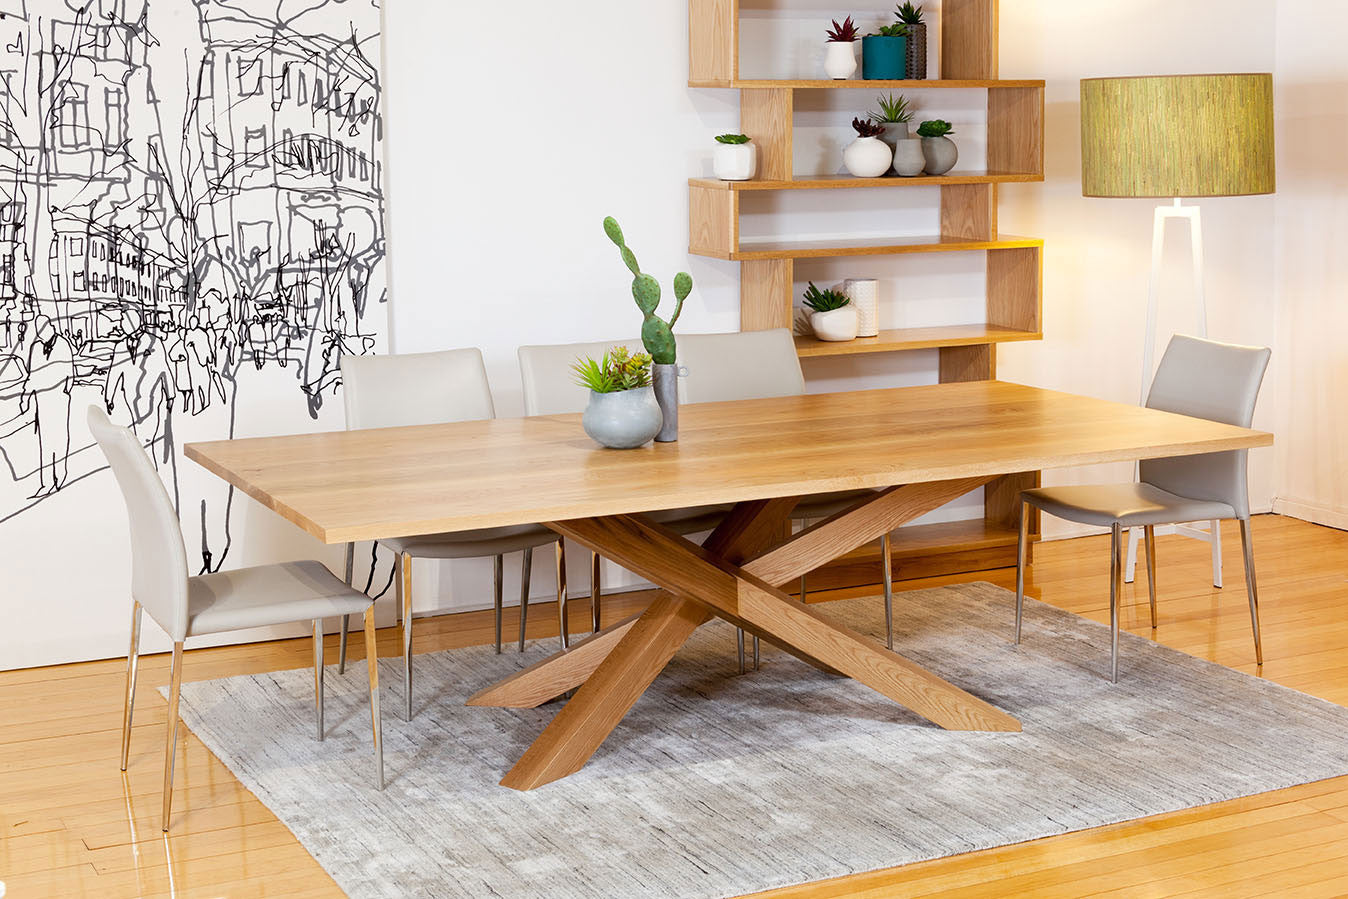 Nedlands Perth Spinifex Solid American Oak Dining Table With Contemporary Base Design Natural Finish And Customisable